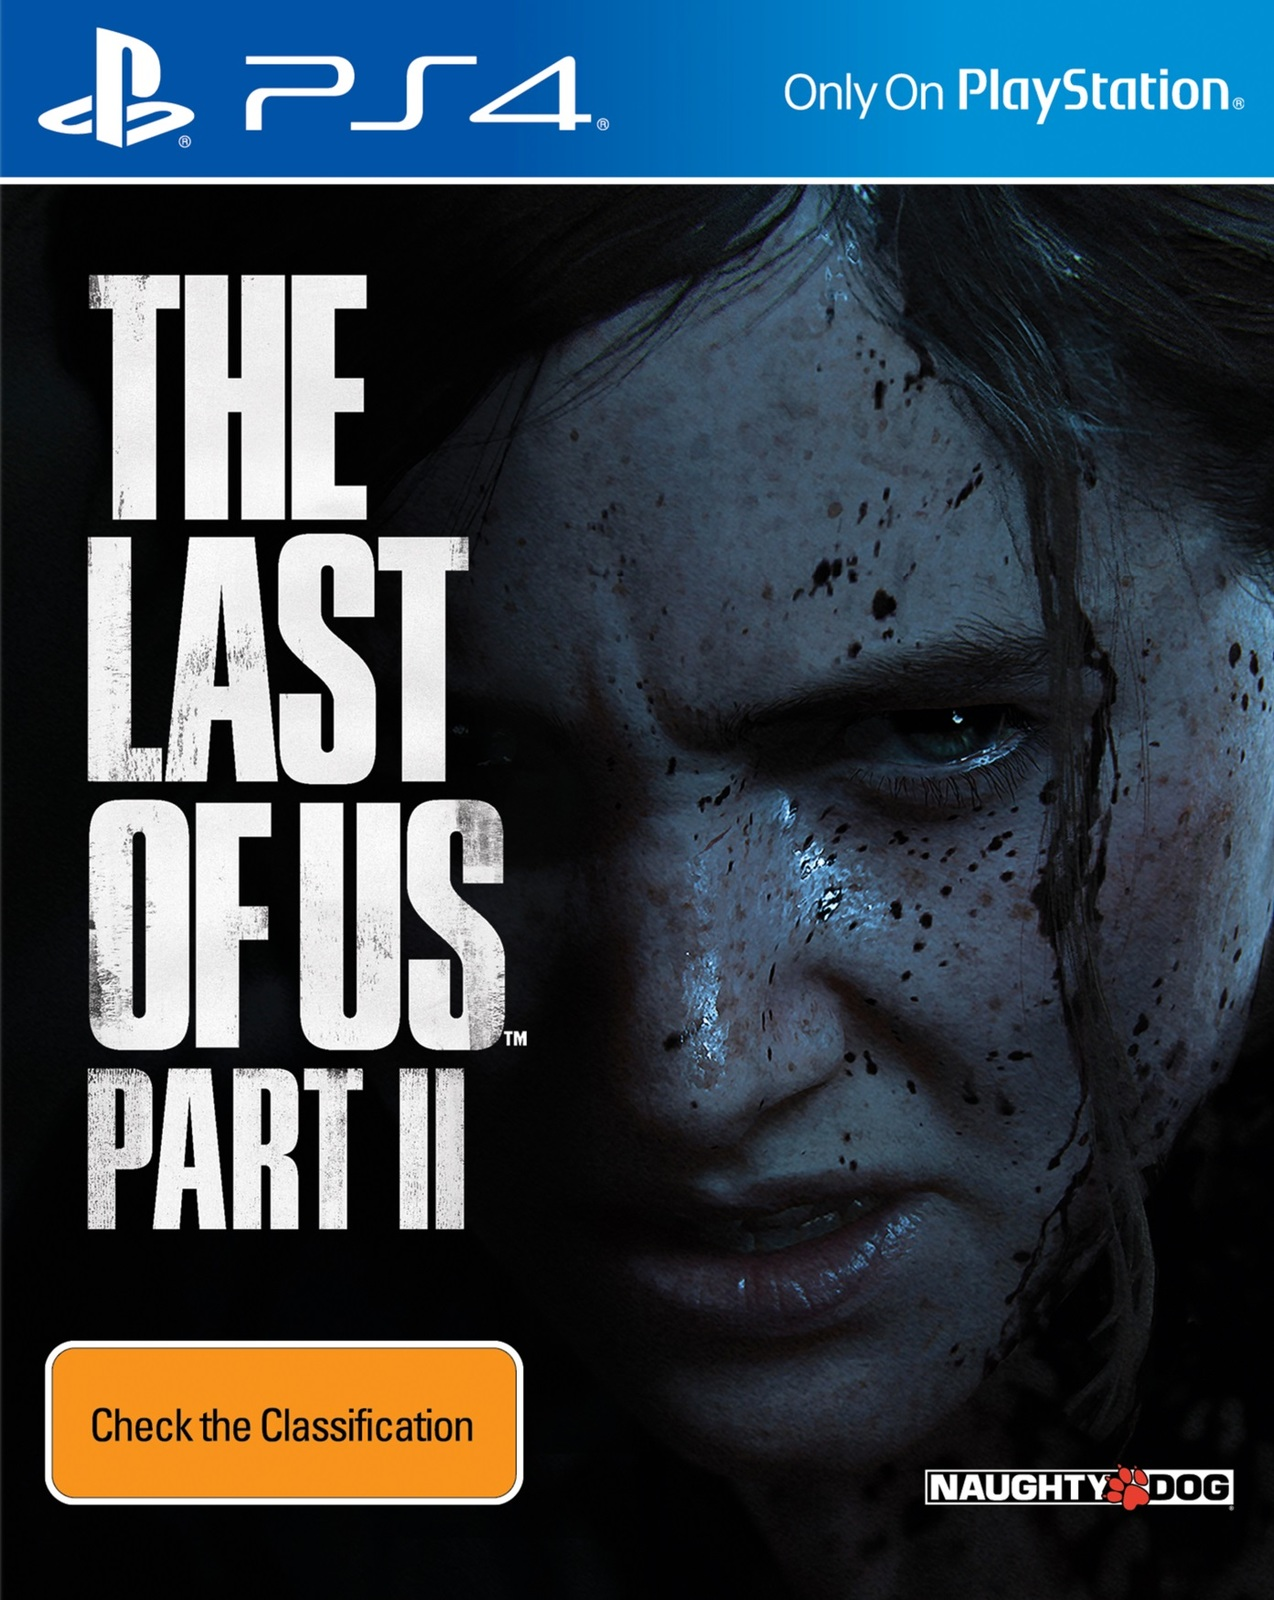 The Last of Us II for PS4 image